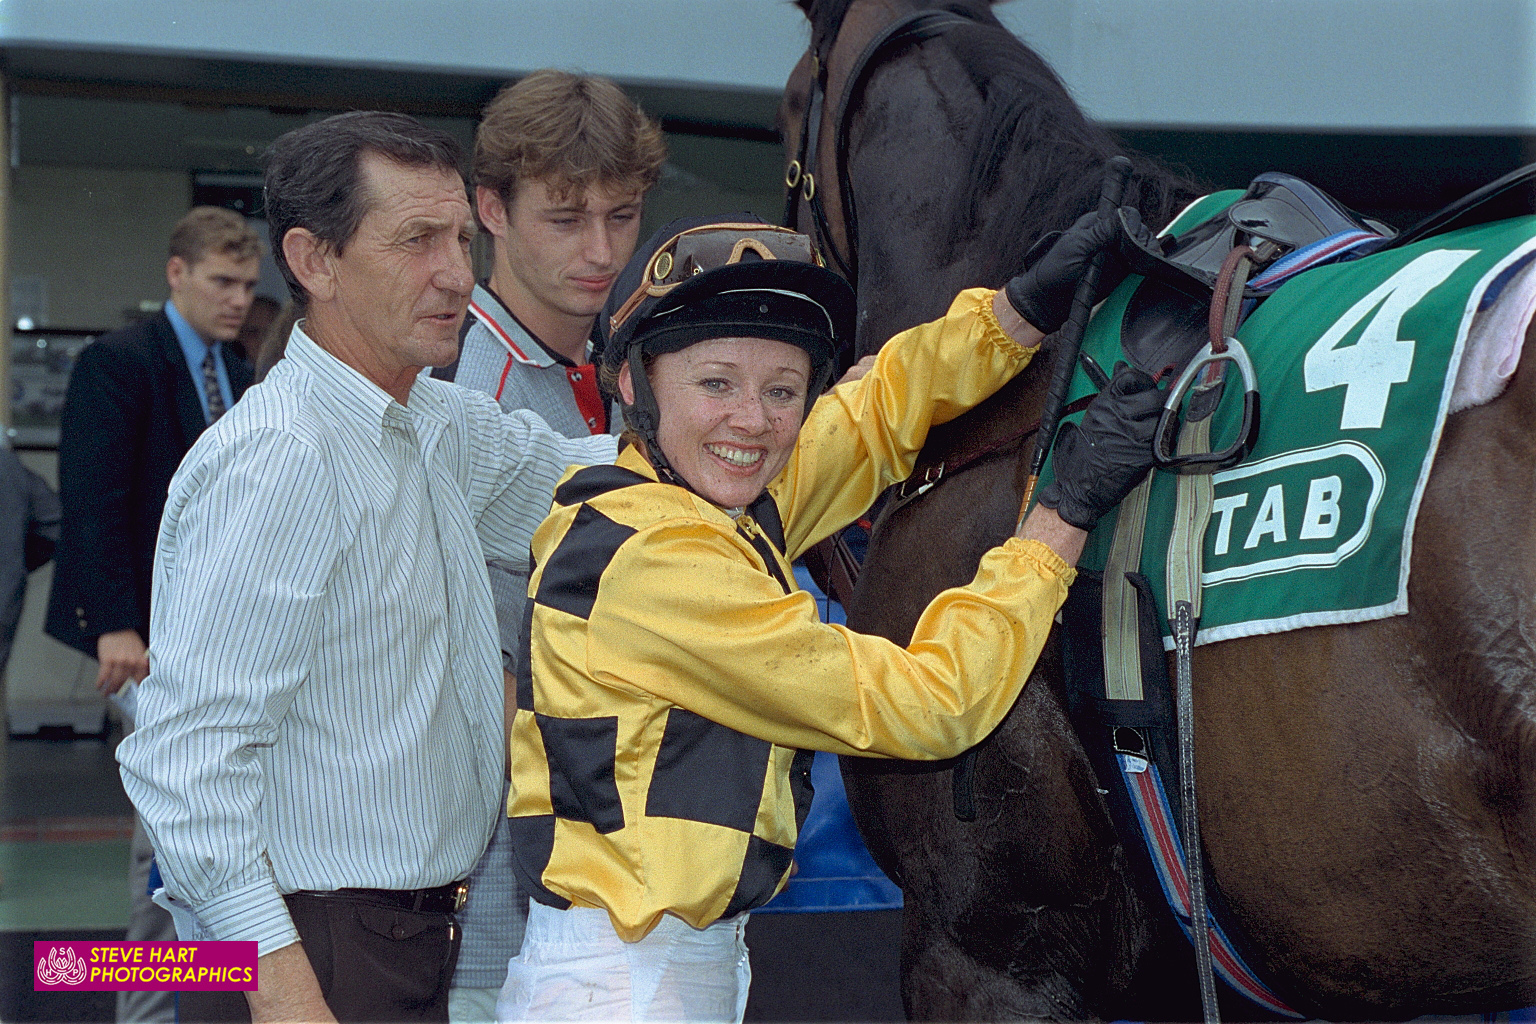 Image courtesy Steve Hart Photographics - Paul Sutherland with Bernadette Cooper at Randwick.